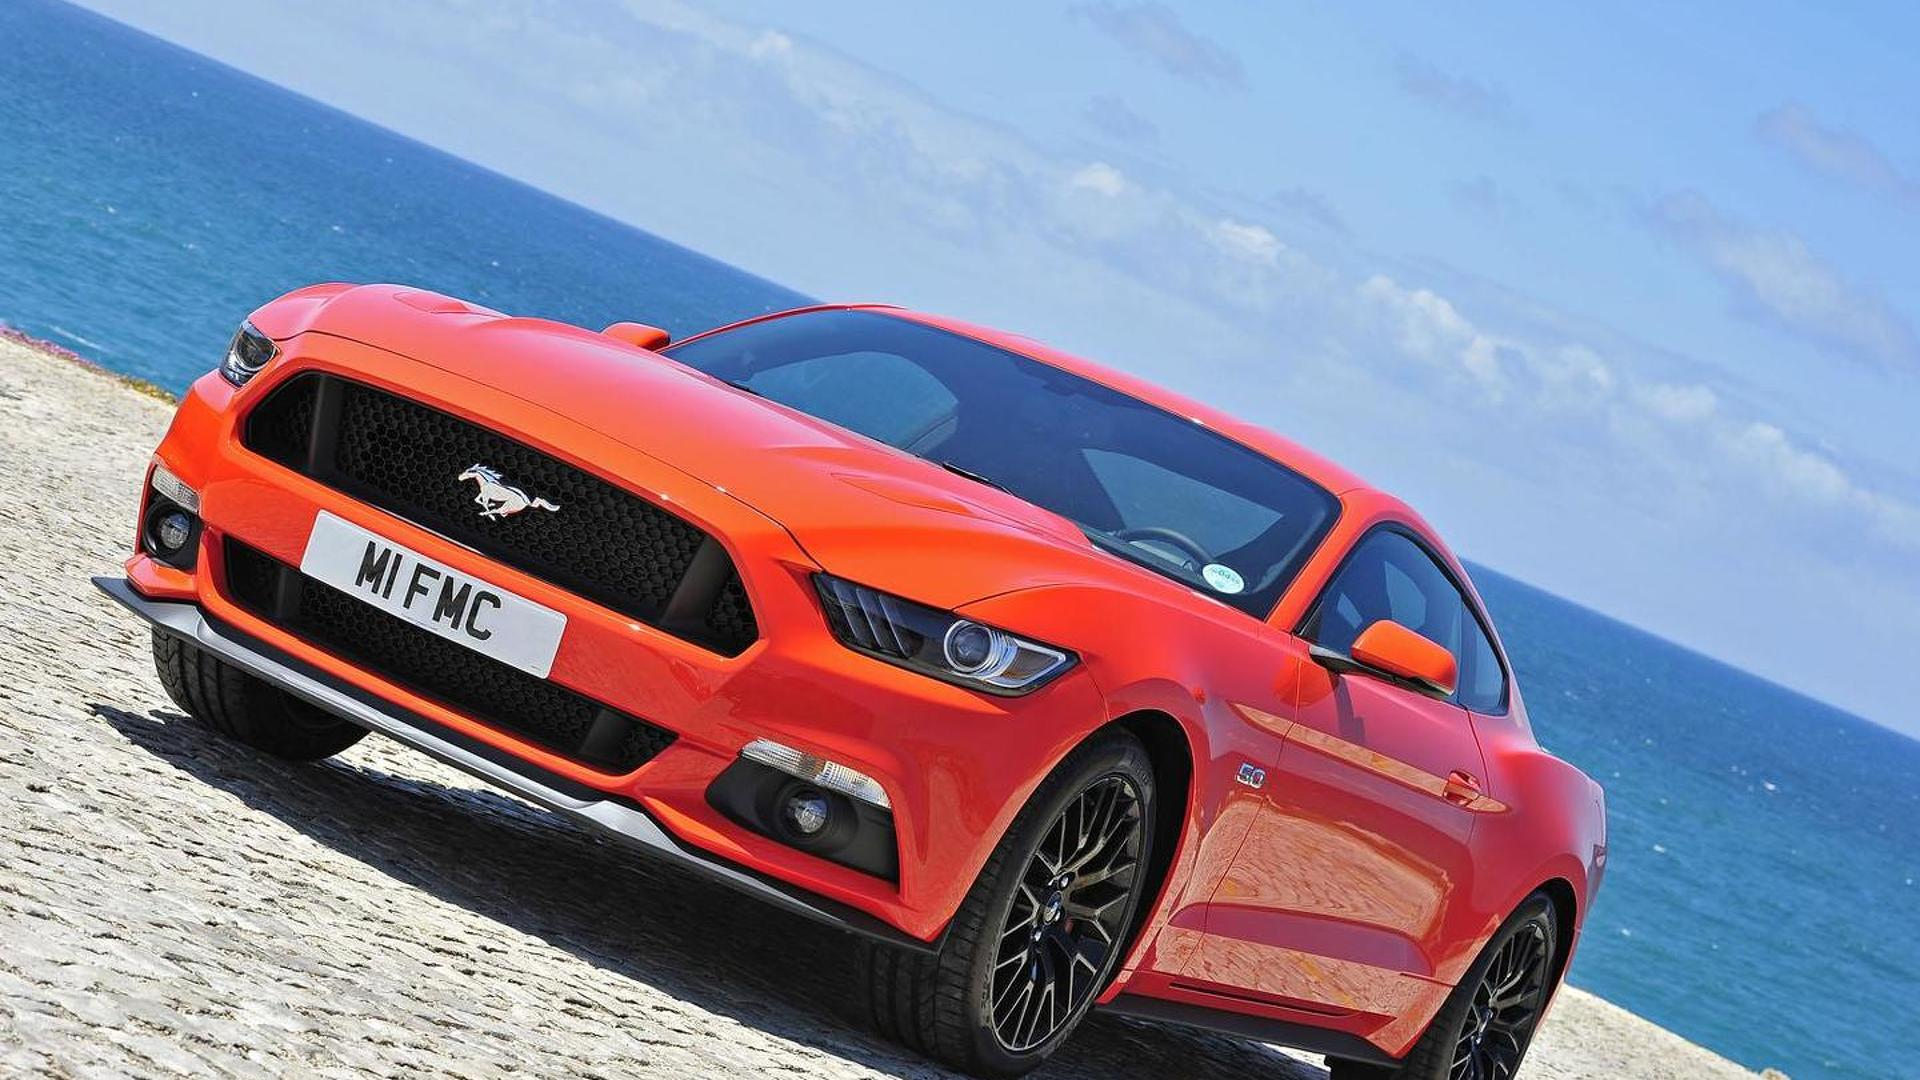 2015 Ford Mustang is a hit in Europe, company gets 500 reservations in 30 seconds